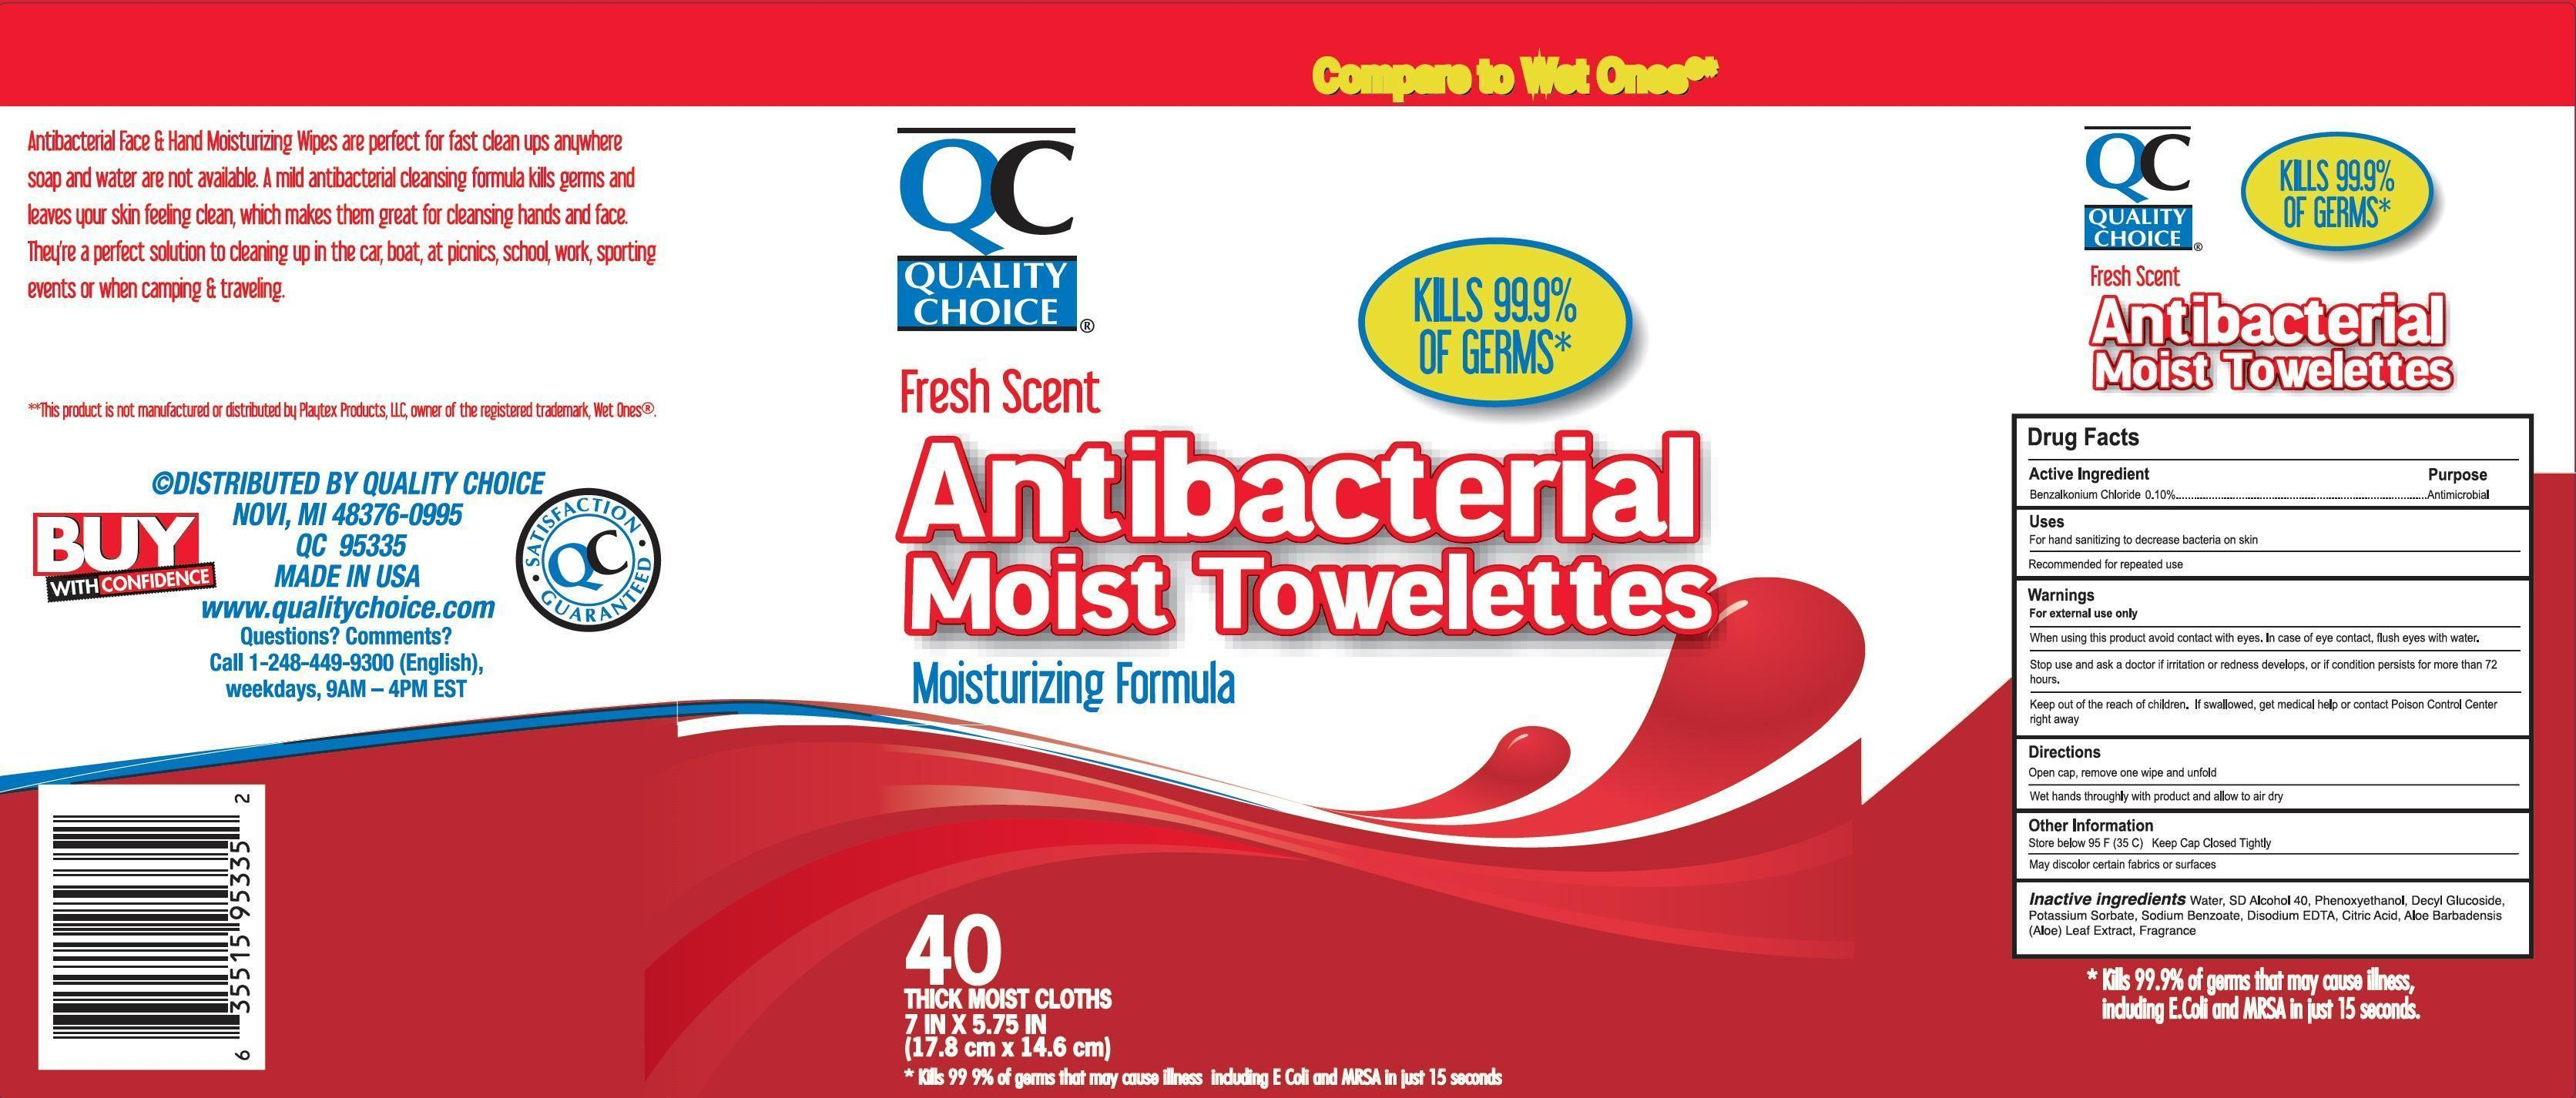 Quality Choice Antibacterial Moist Towelettes (Benzalkonium Chloride) Cloth [Chain Drug Marketing Association]